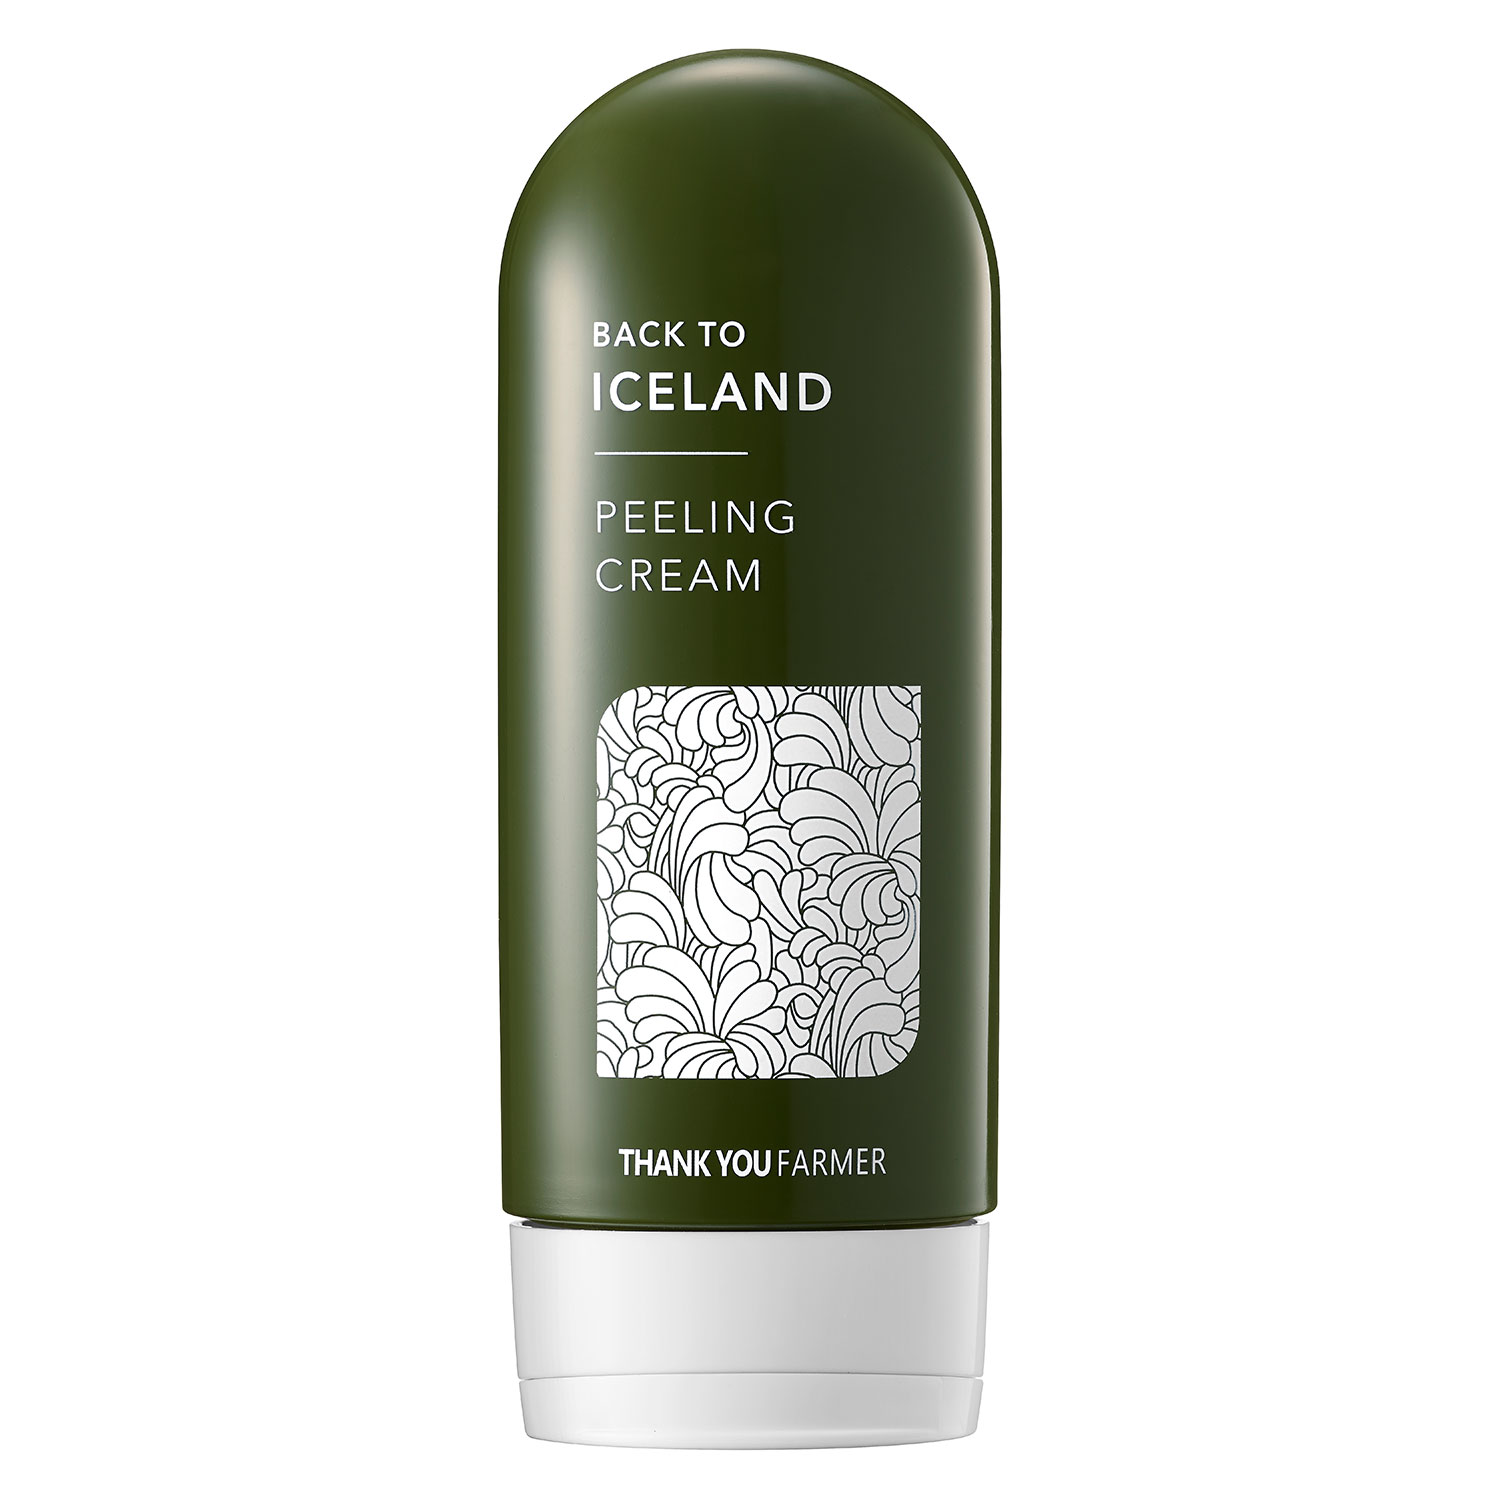 THANK YOU FARMER - Back To Iceland Peeling Cream - 150g